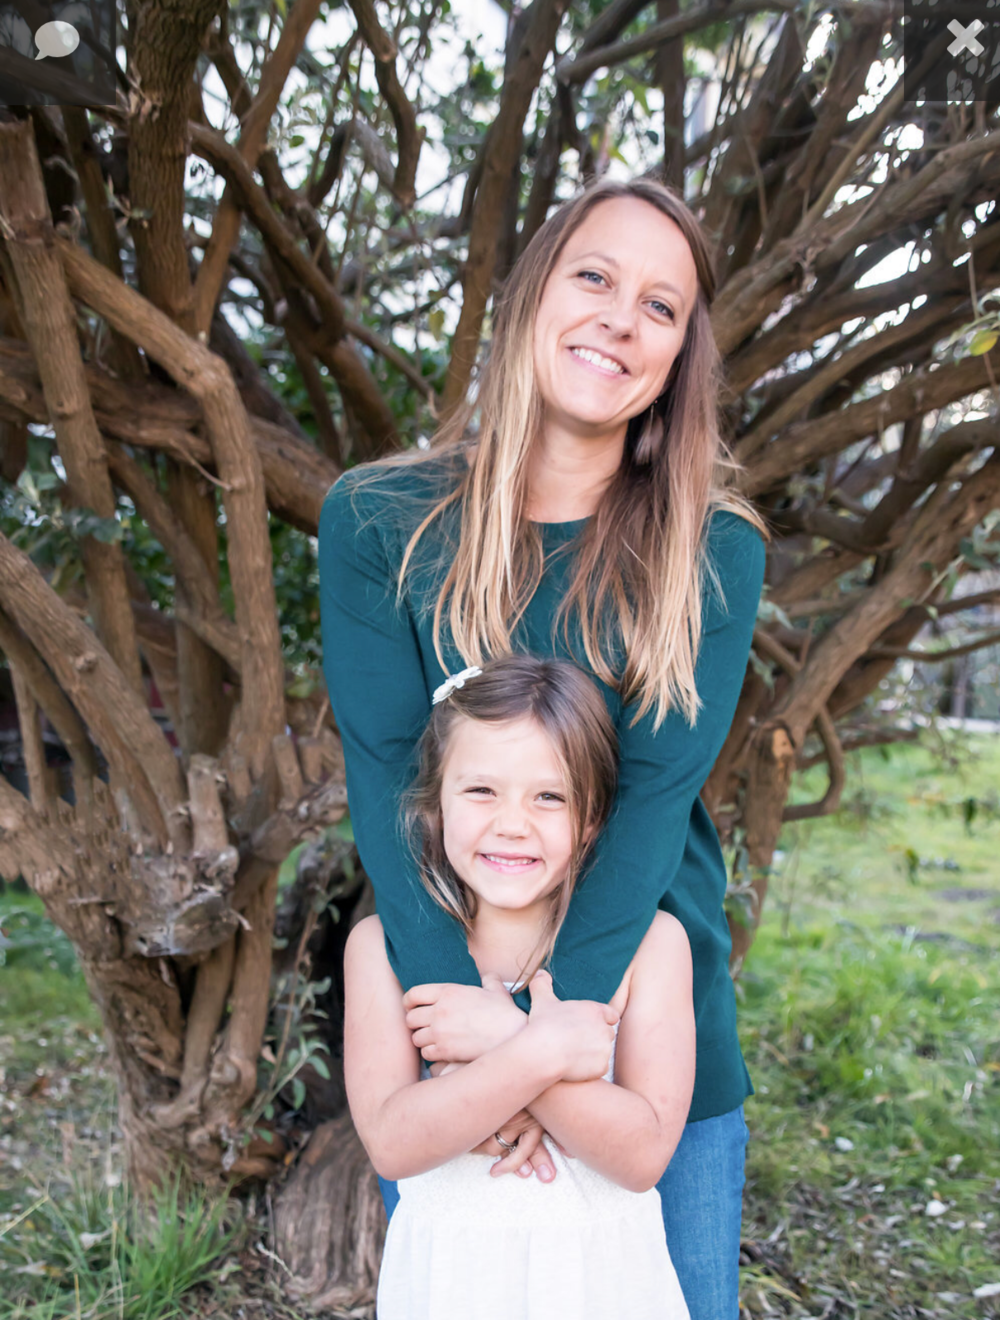 Sara Balla- Owner   Each day I am humbled by the strength of community, family and early childhood education created here at Discovery! It has truly been an honor to care for so many children here in our beautiful County of Santa Cruz. Along with my husband's support and guidance, I opened the doors to Discovery in July of 2015 with the intention of creating a community hub for new parents to build strong relationships and find solace in the nurturing environment created here for our children. I started my career as an elementary teacher in 2004, working with children between Kindergarten and third grade, collaborating with amazing and innovative educator teams in the wider Bay Area and more recently at Pacific Elementary in Davenport. After the birth of my daughter, my husband and I opened a home-based preschool on Glen Canyon Rd. and eventually created and established today's Discovery Preschool and Family Center. My vision for the school is to foster the professional development and personal growth of our educators to become life-long learners and strong leaders in our educational community; additionally, I strive to create programs for families to feel supported and nurtured throughout the often challenging and ever-changing lives of early childhood!  Email: sara.scdiscoverypreschool@gmail.com